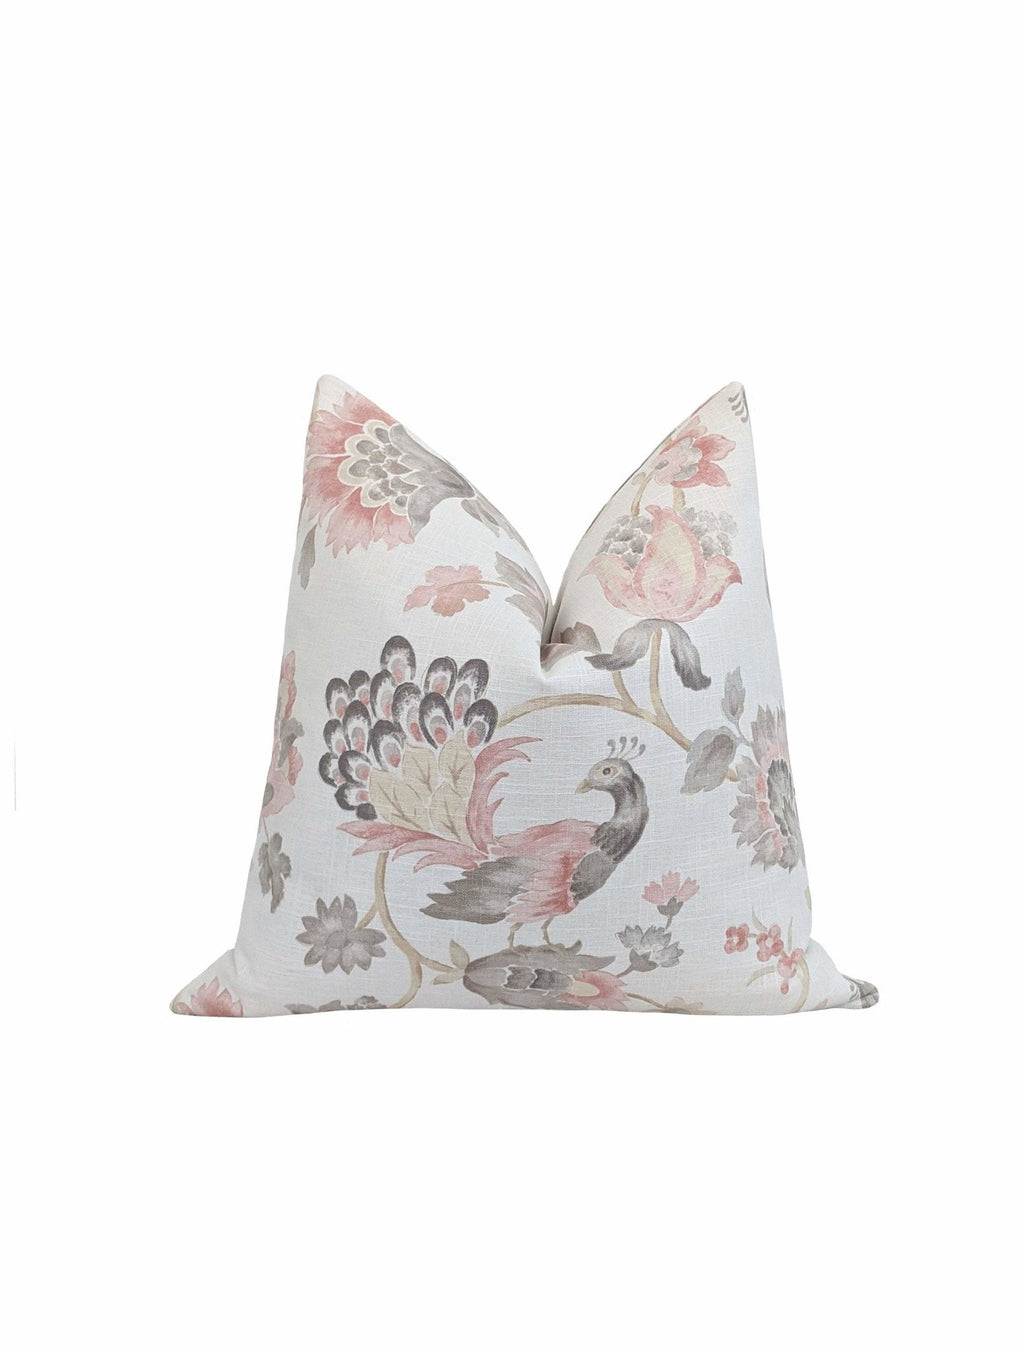 Blush Pink & Grey Peacock Floral Pillow - Land of Pillows